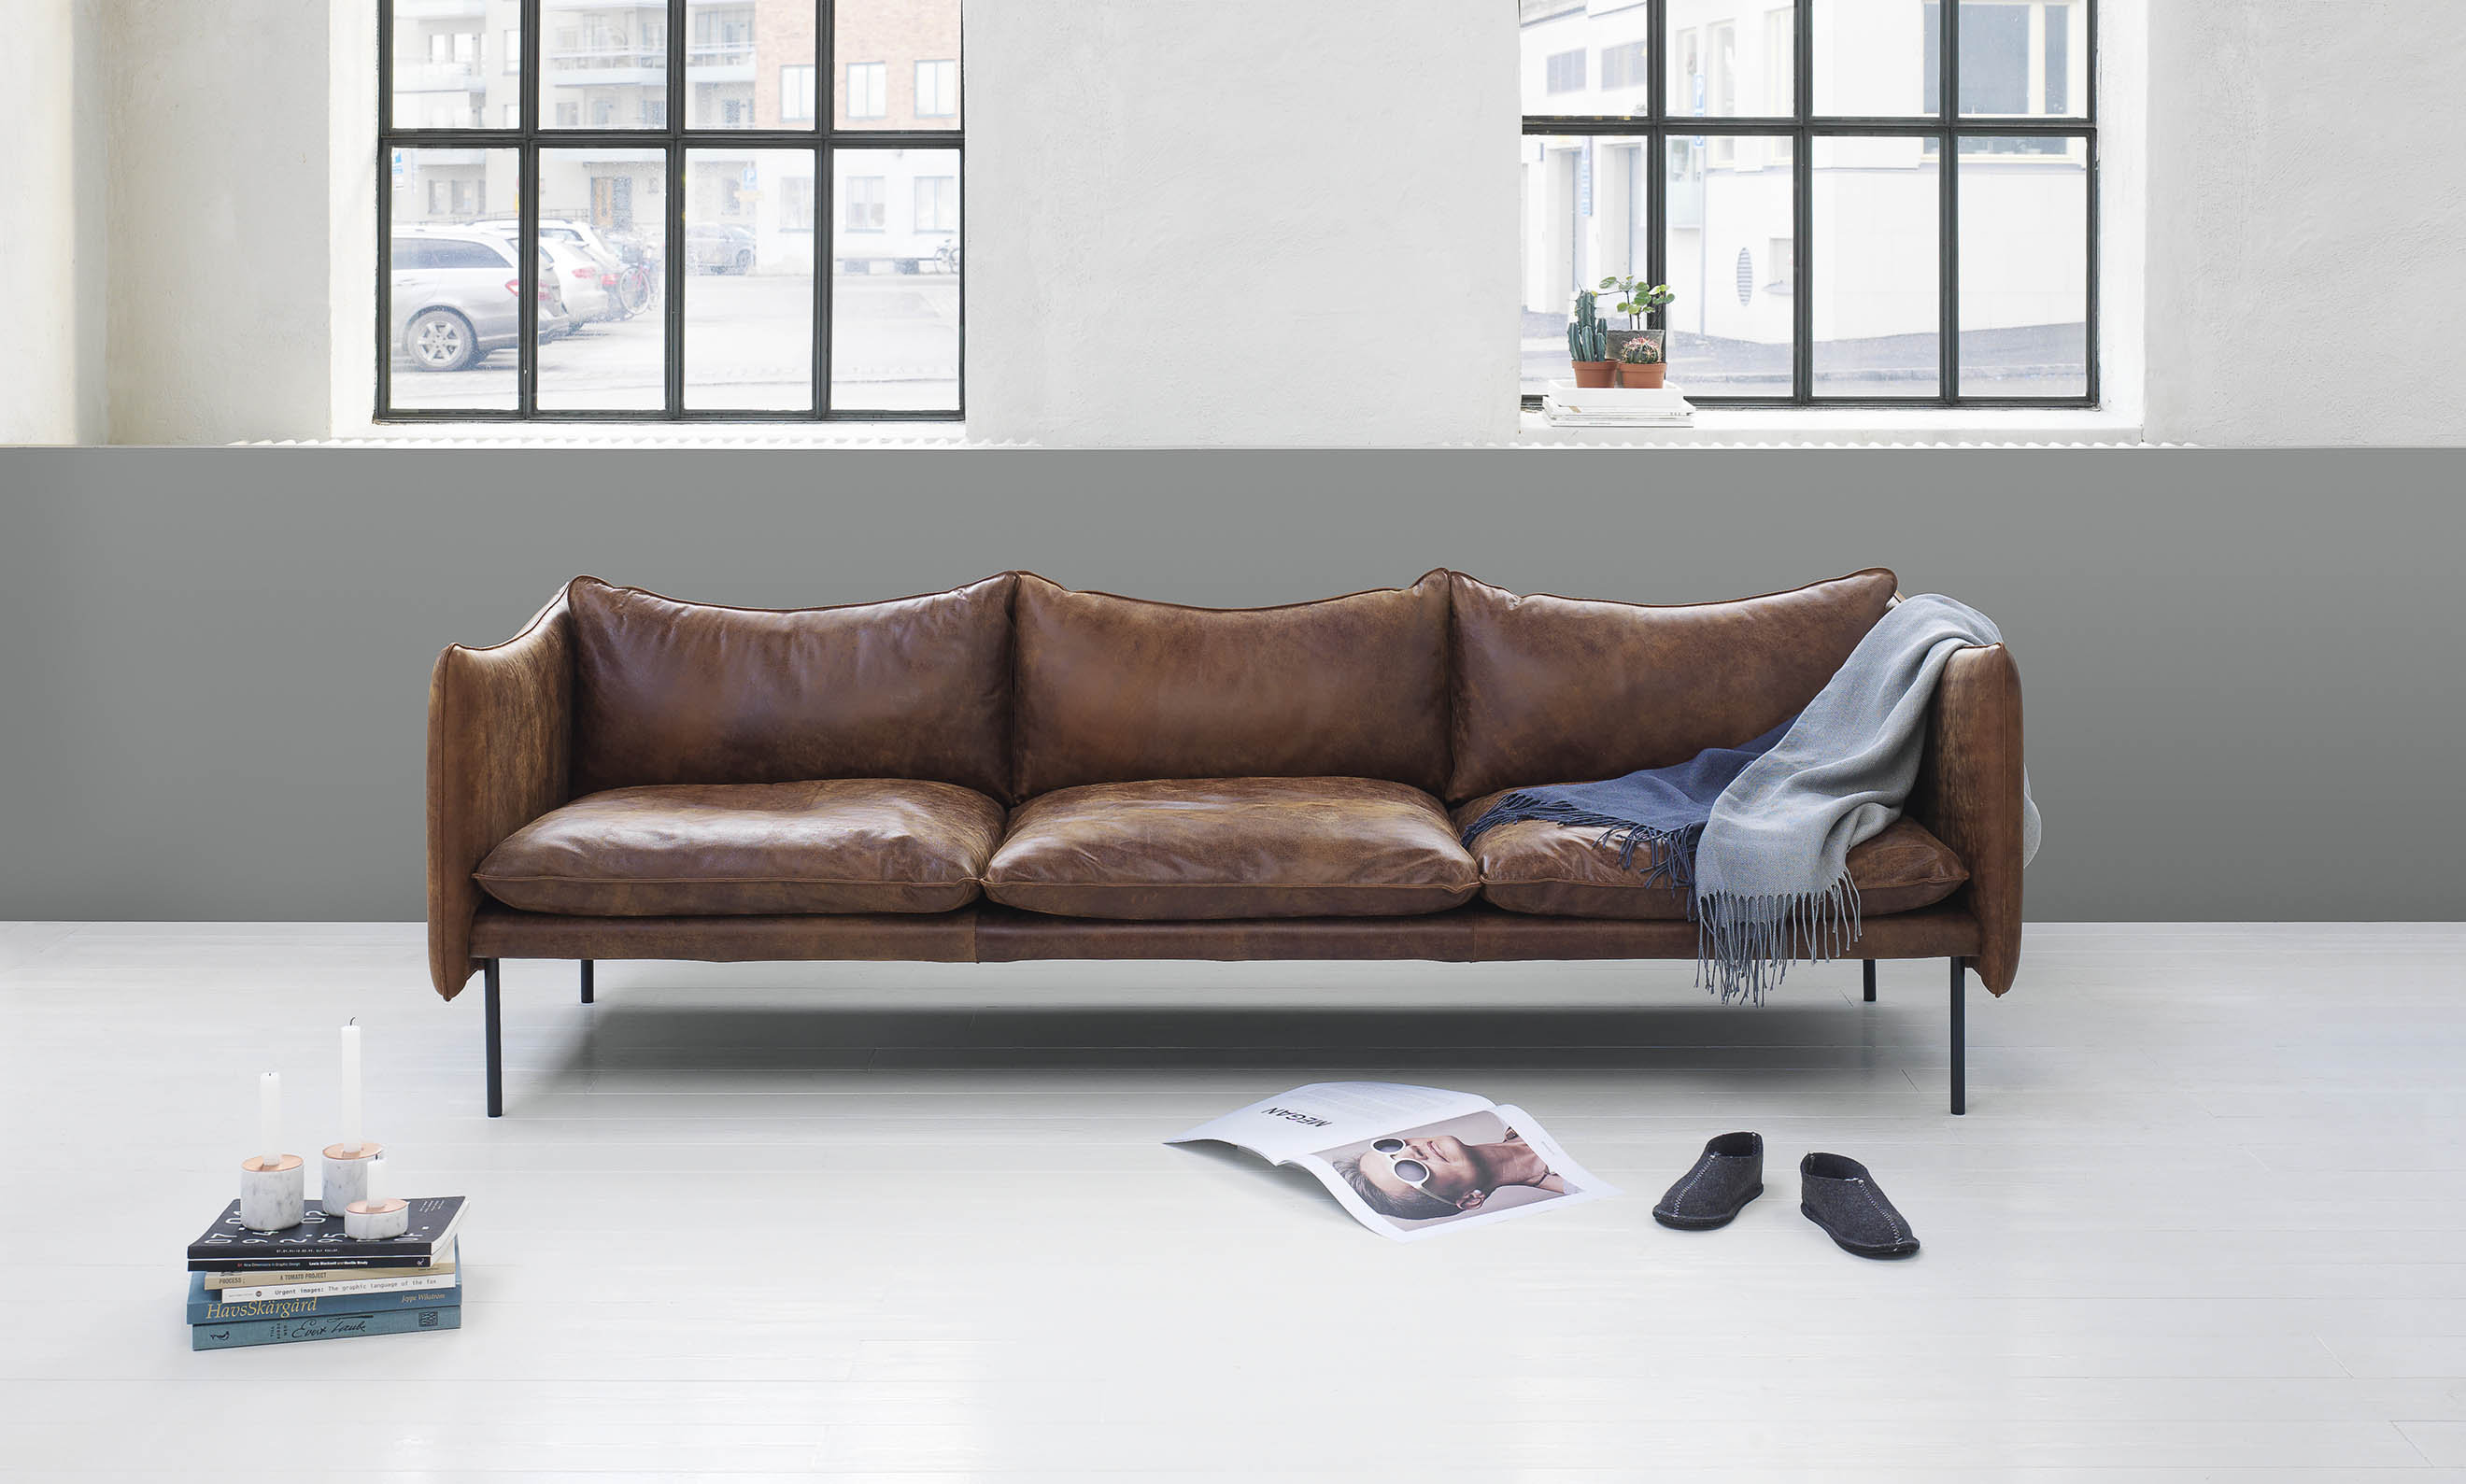 Swedish Furniture beautiful leather sofasswedish brand fogia - cate st hill